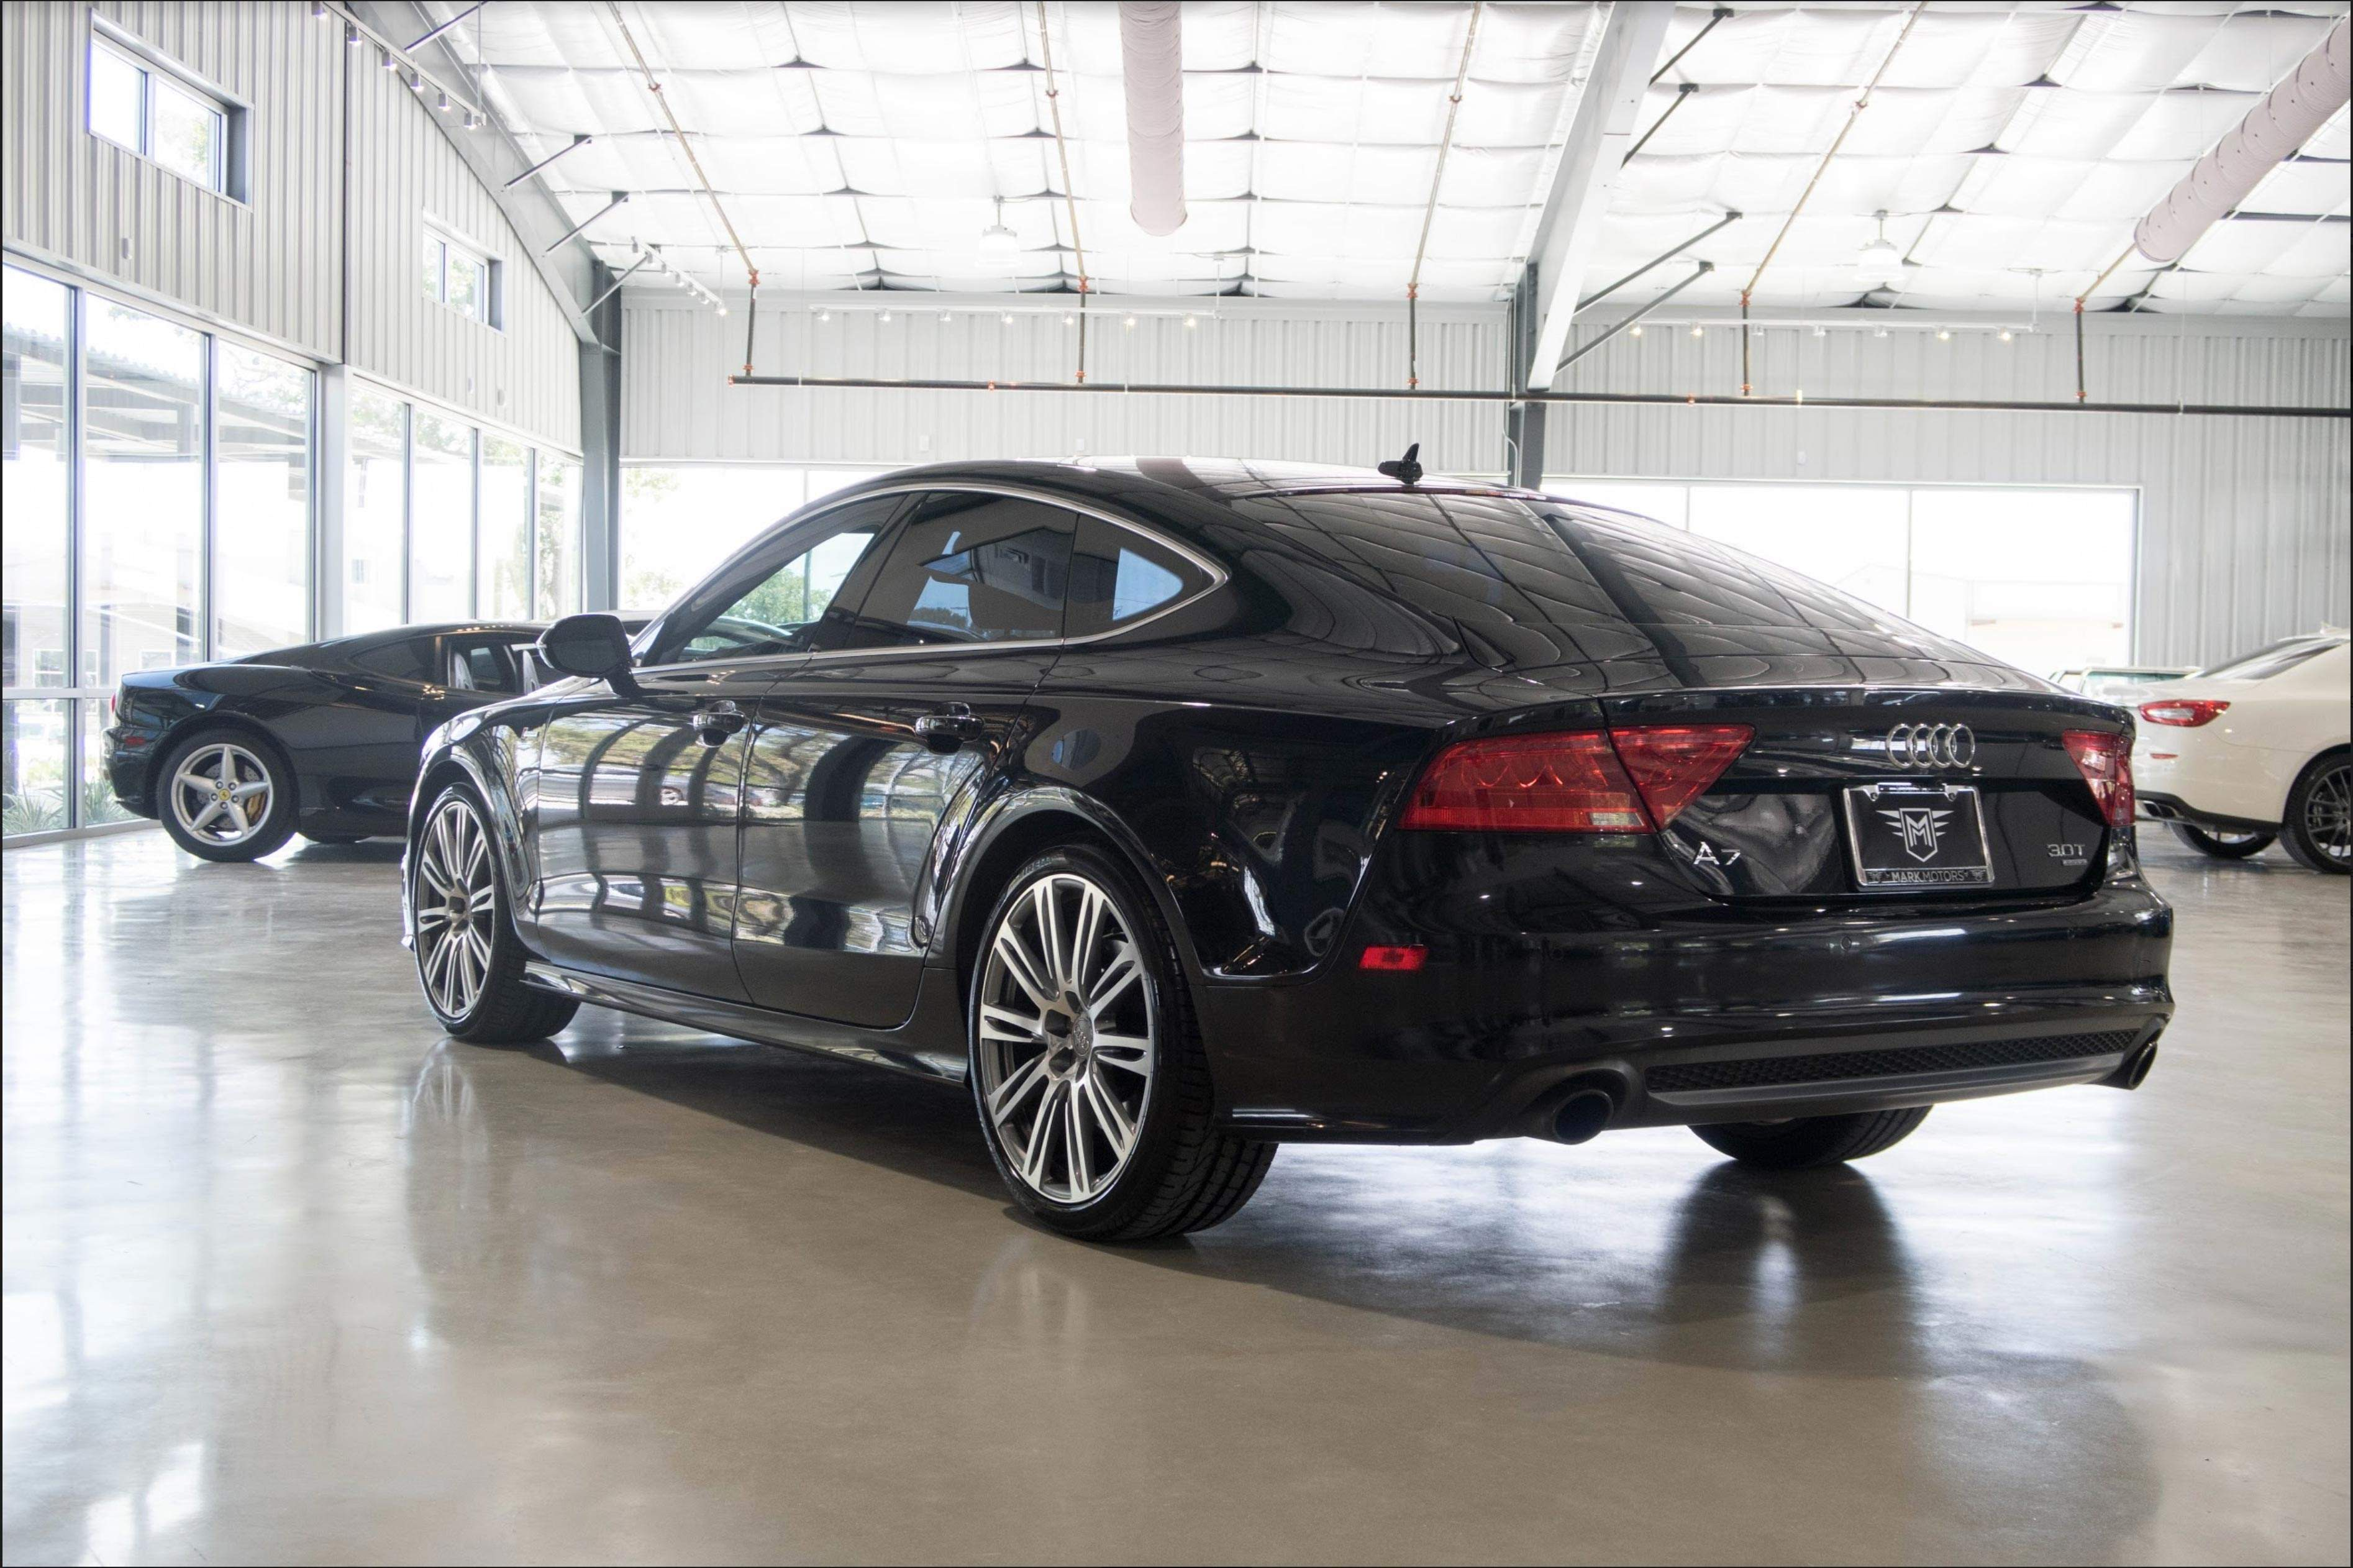 2017 Audi A7 For Sale In Boerne Tx 2017 Audi A7 Near Me In Boerne Tx 2017 Audi A7 Specials In Boerne Tx 2017 Audi A7 New Offers In